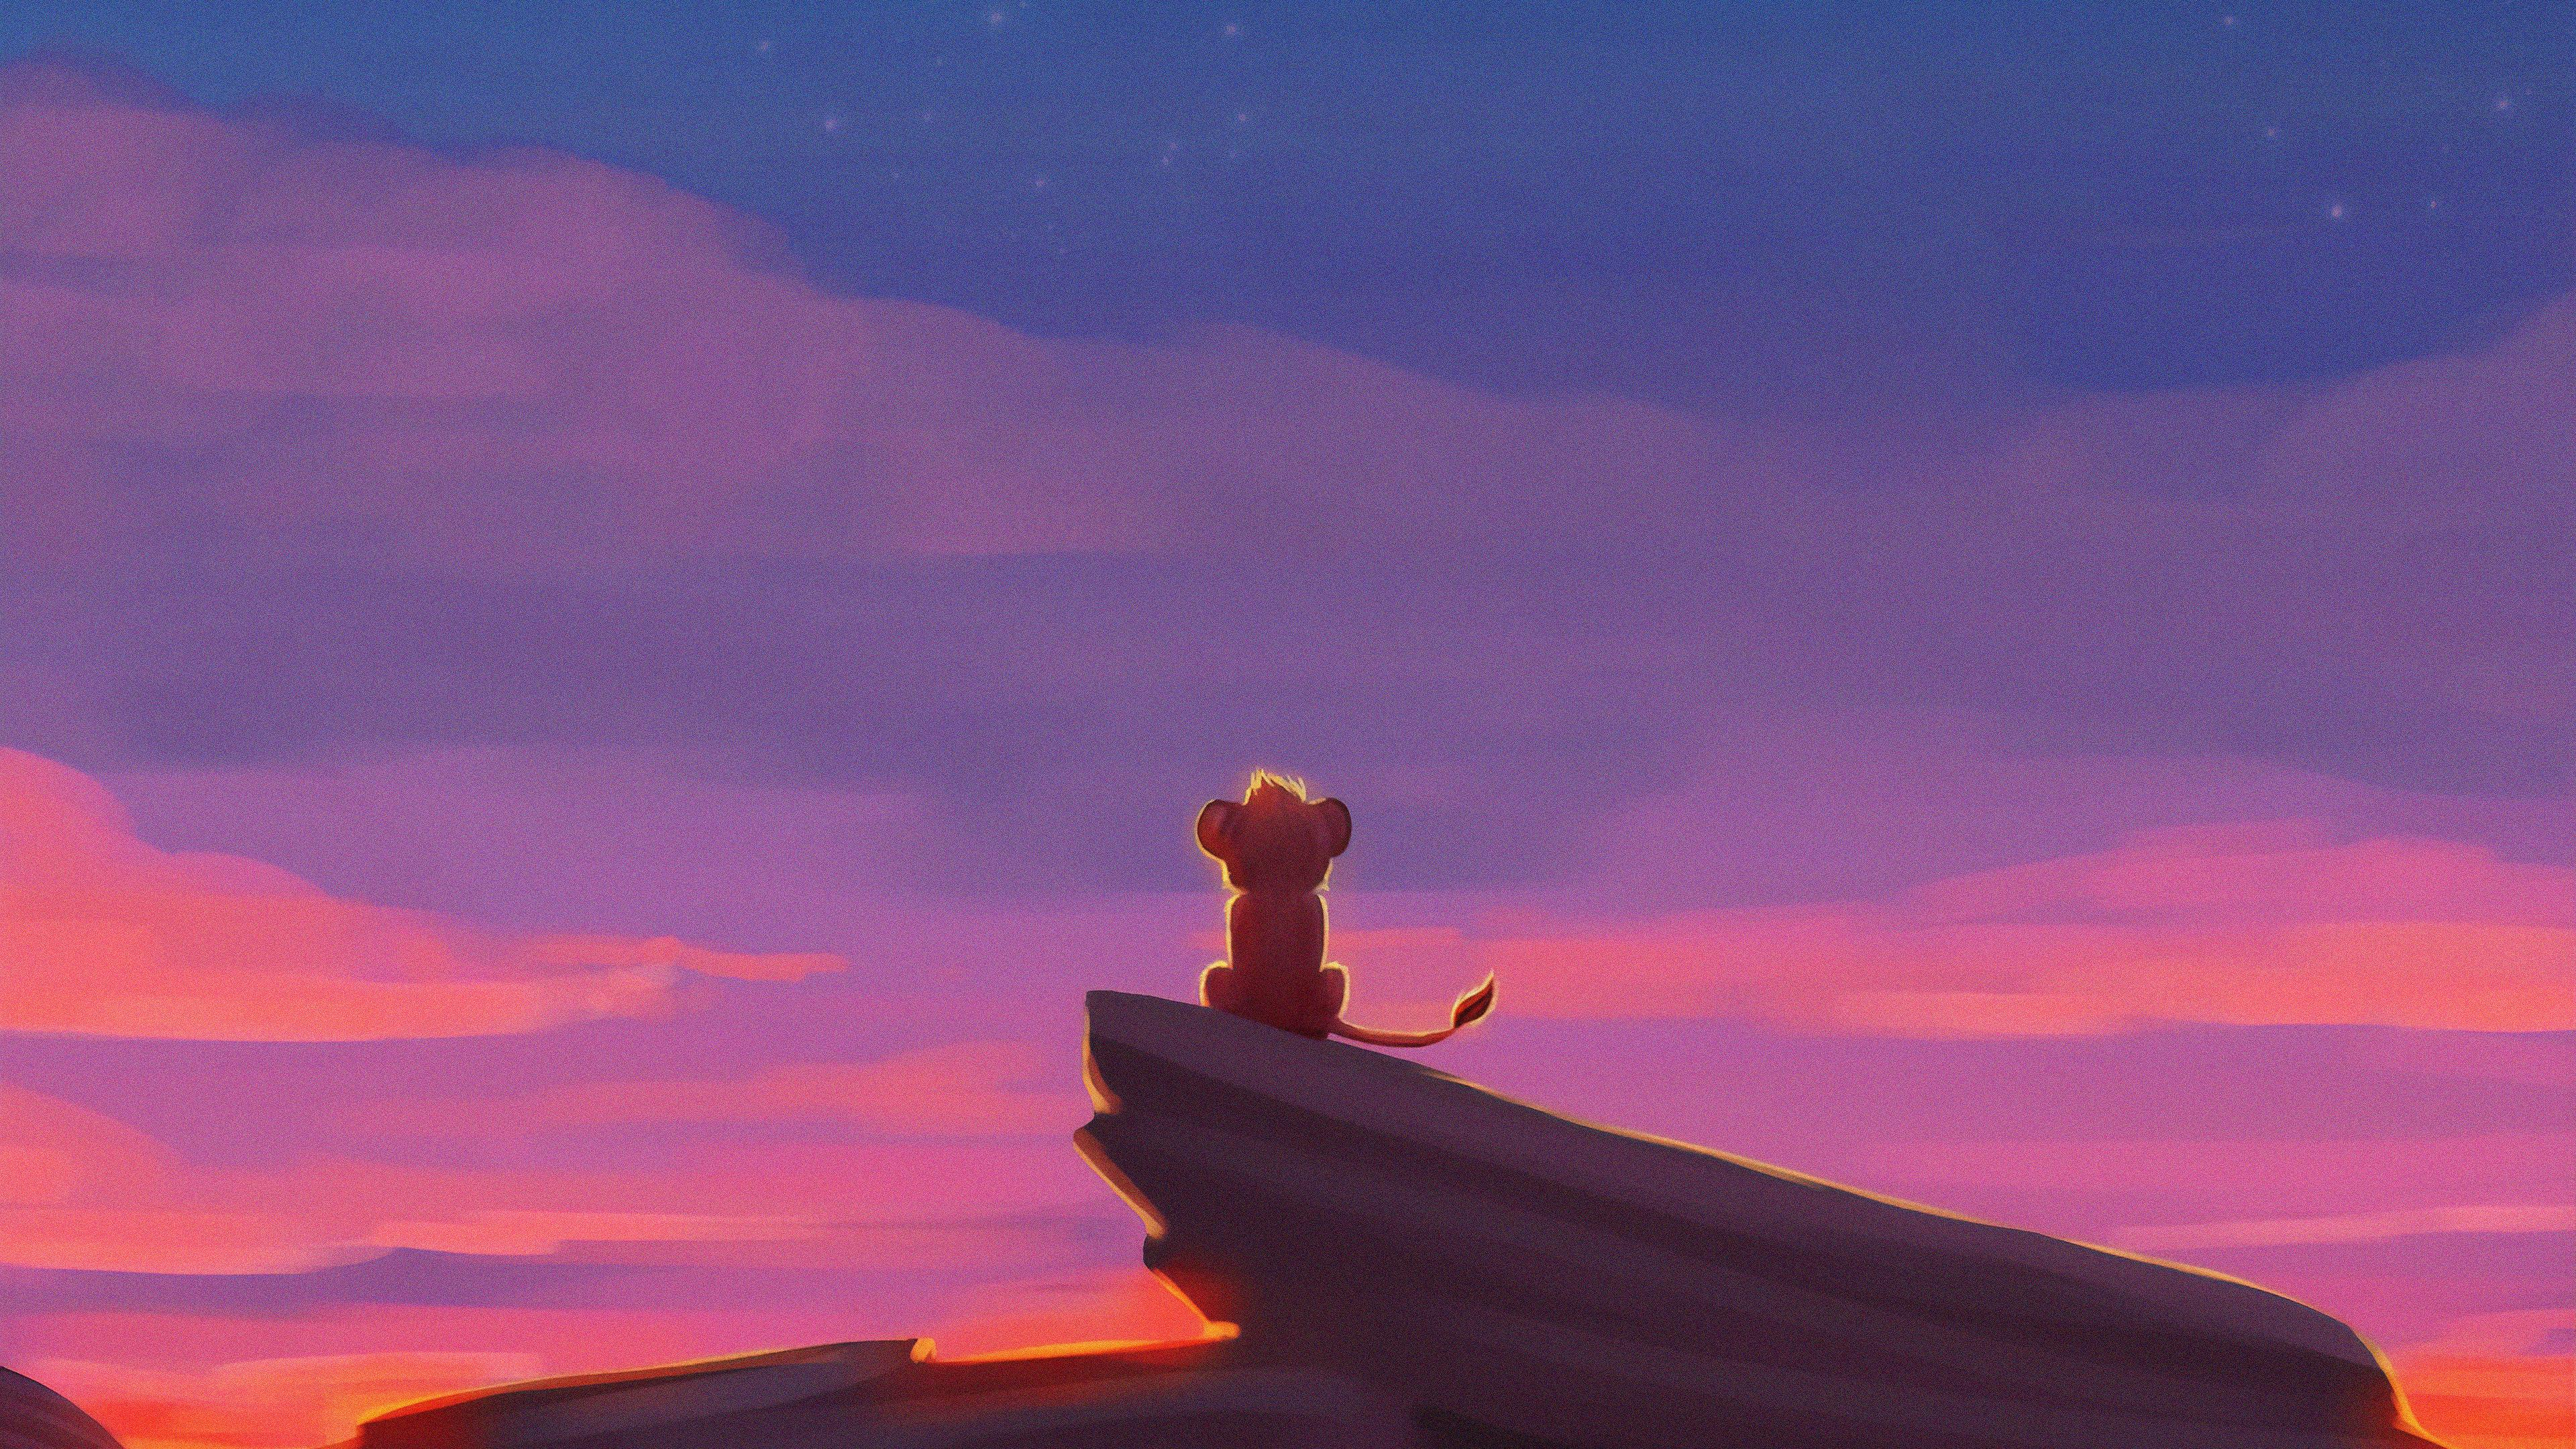 Disney Wallpapers Lion King